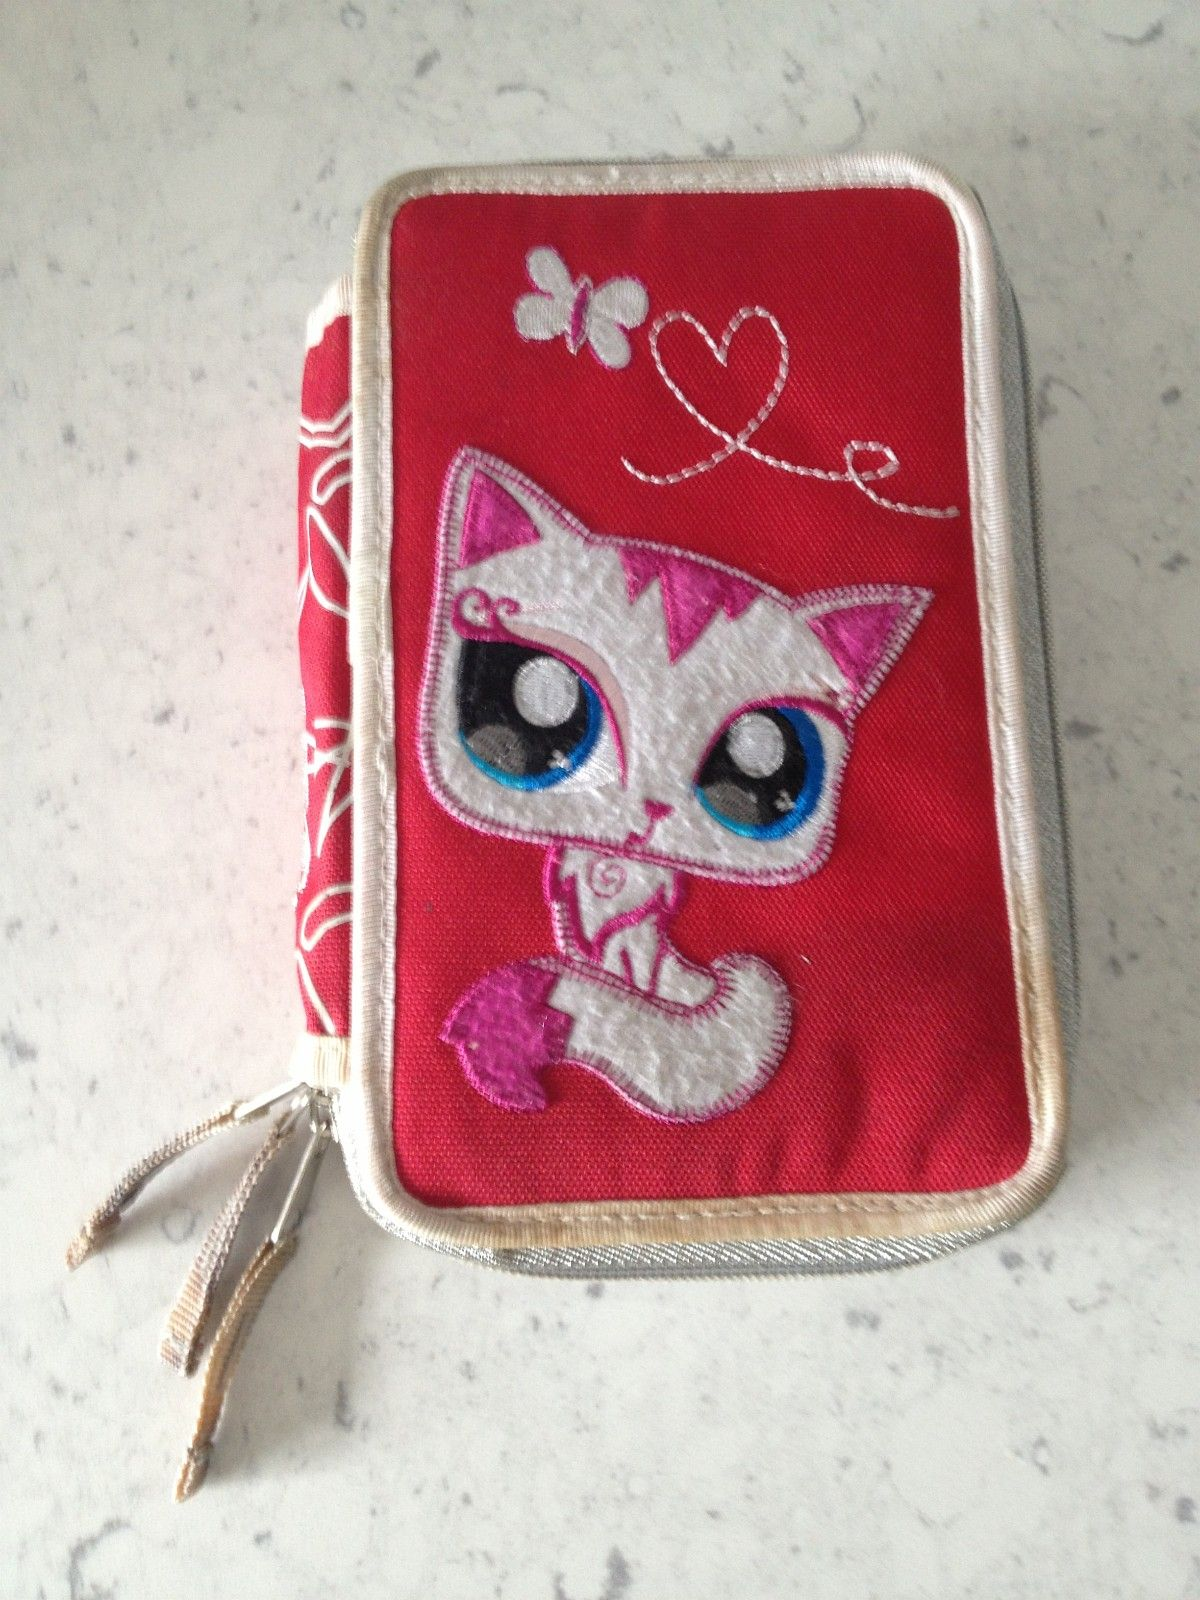 Kids Beckmann Pencil Case - Sandnes  - Kids Beckmann Pencil Case 3 Zipper Locking Internal Compartments All Zips working Good Condition Ideal for School Kids Buyer pays Postage & Package Costs All money raised selling these items goes towards our Iceland Expedition Summer 2017 (www. - Sandnes